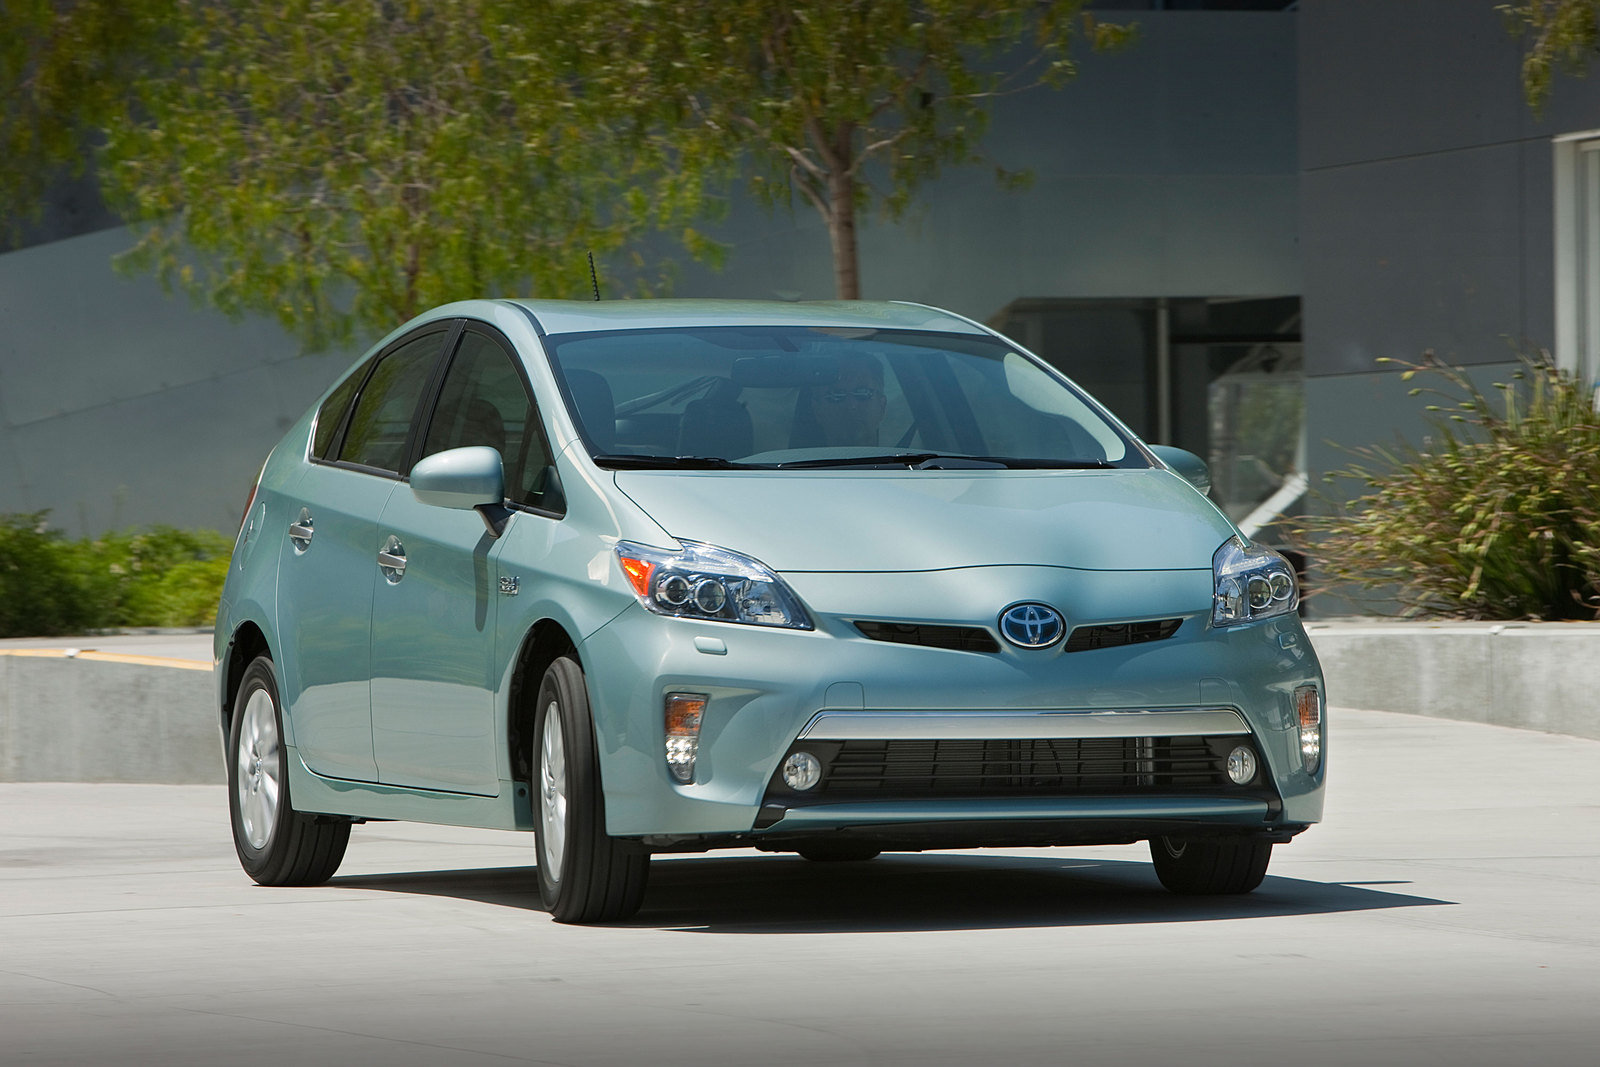 2013 Toyota Prius Plug-in Hybrid Review - Top Speed